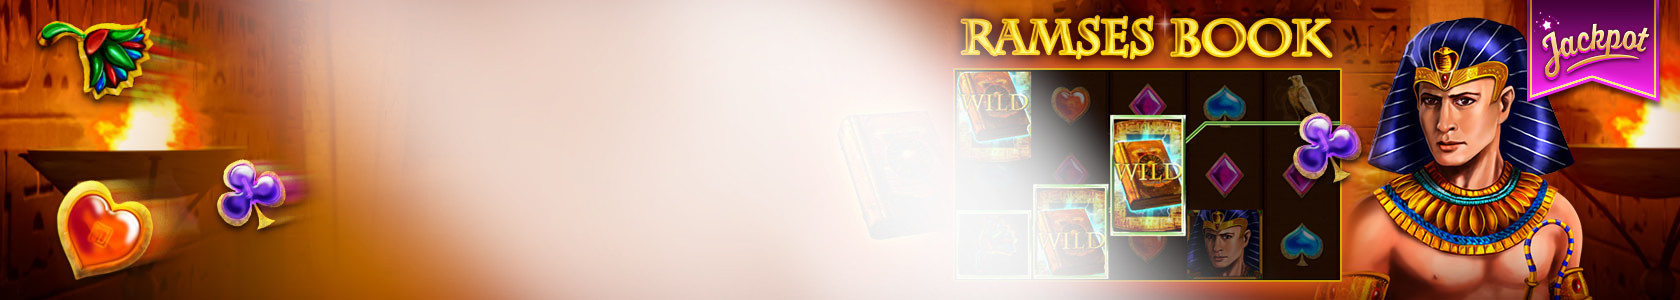 Win with the Ramses Book slot